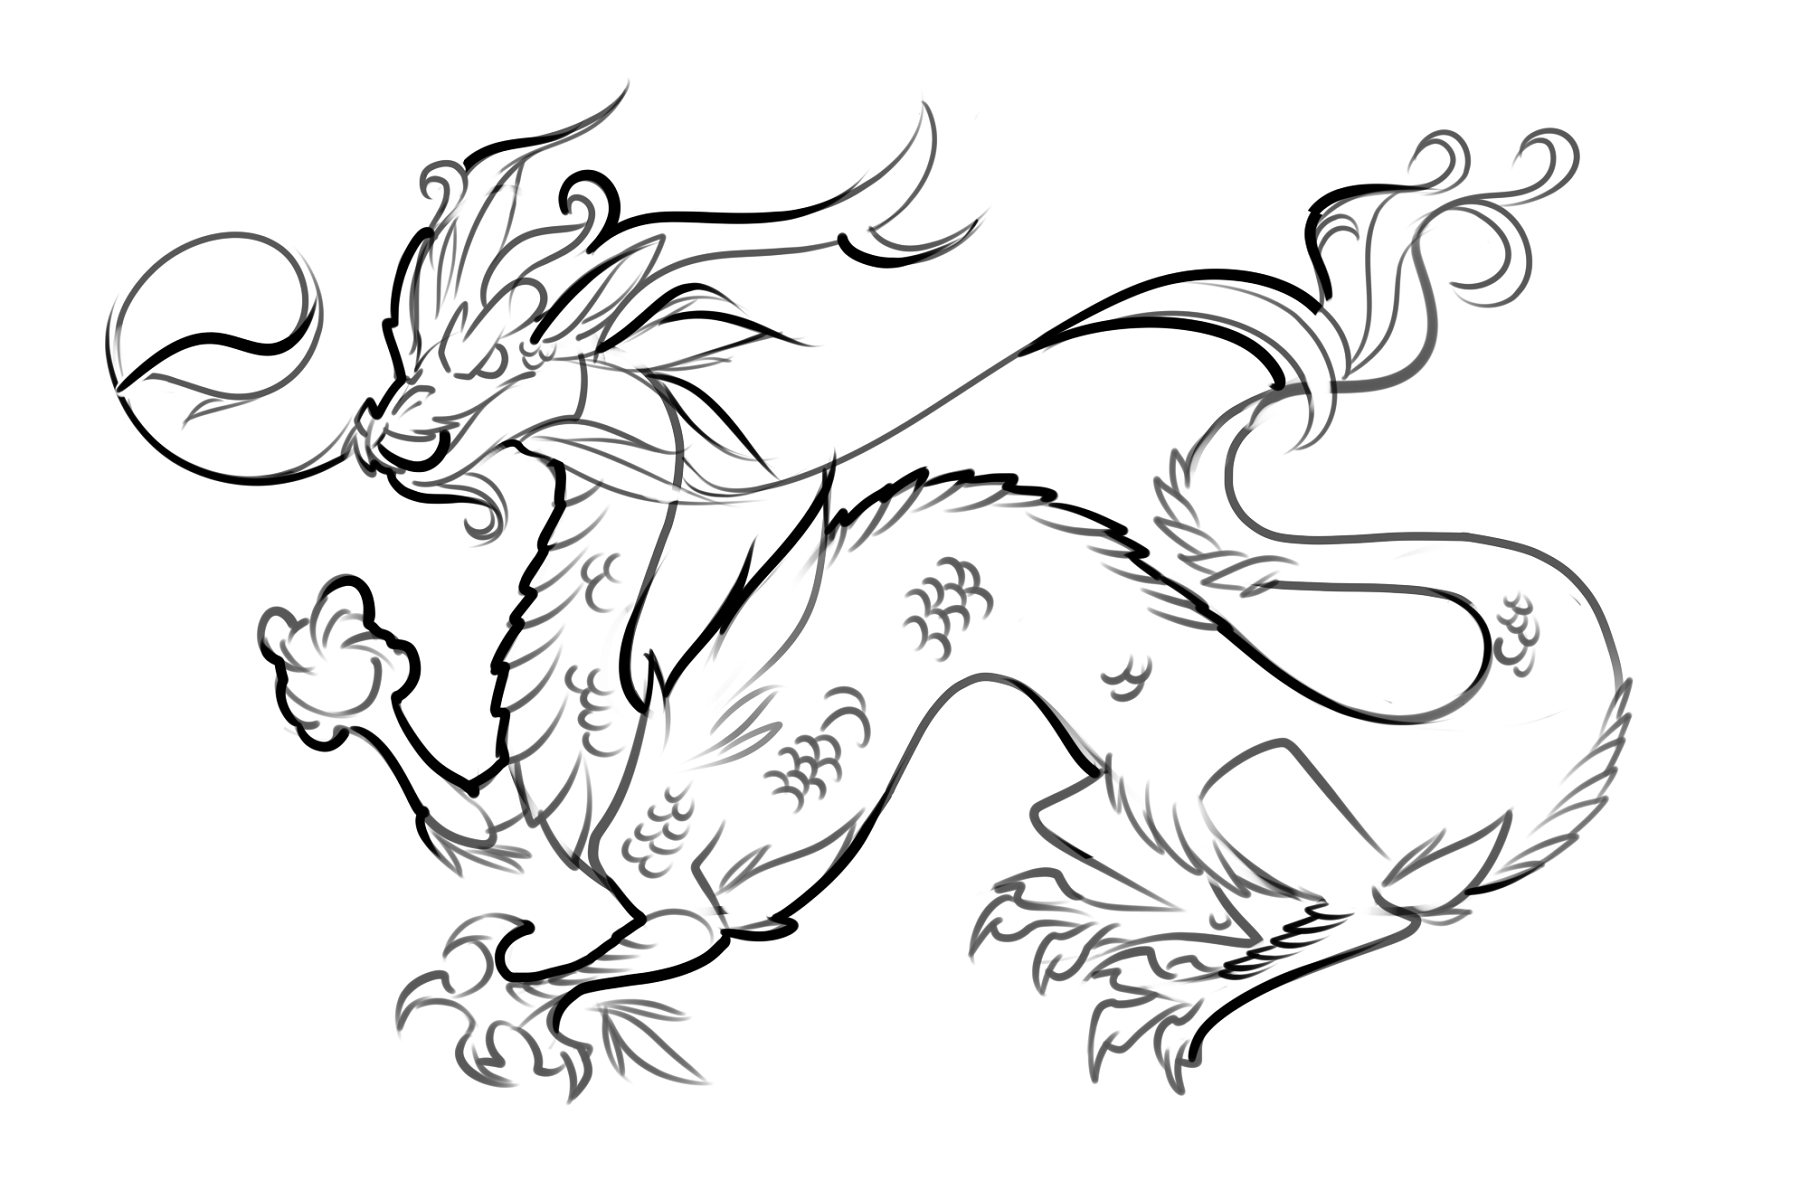 dragon drawing easy tribal drawing step by step at getdrawings free download easy dragon drawing